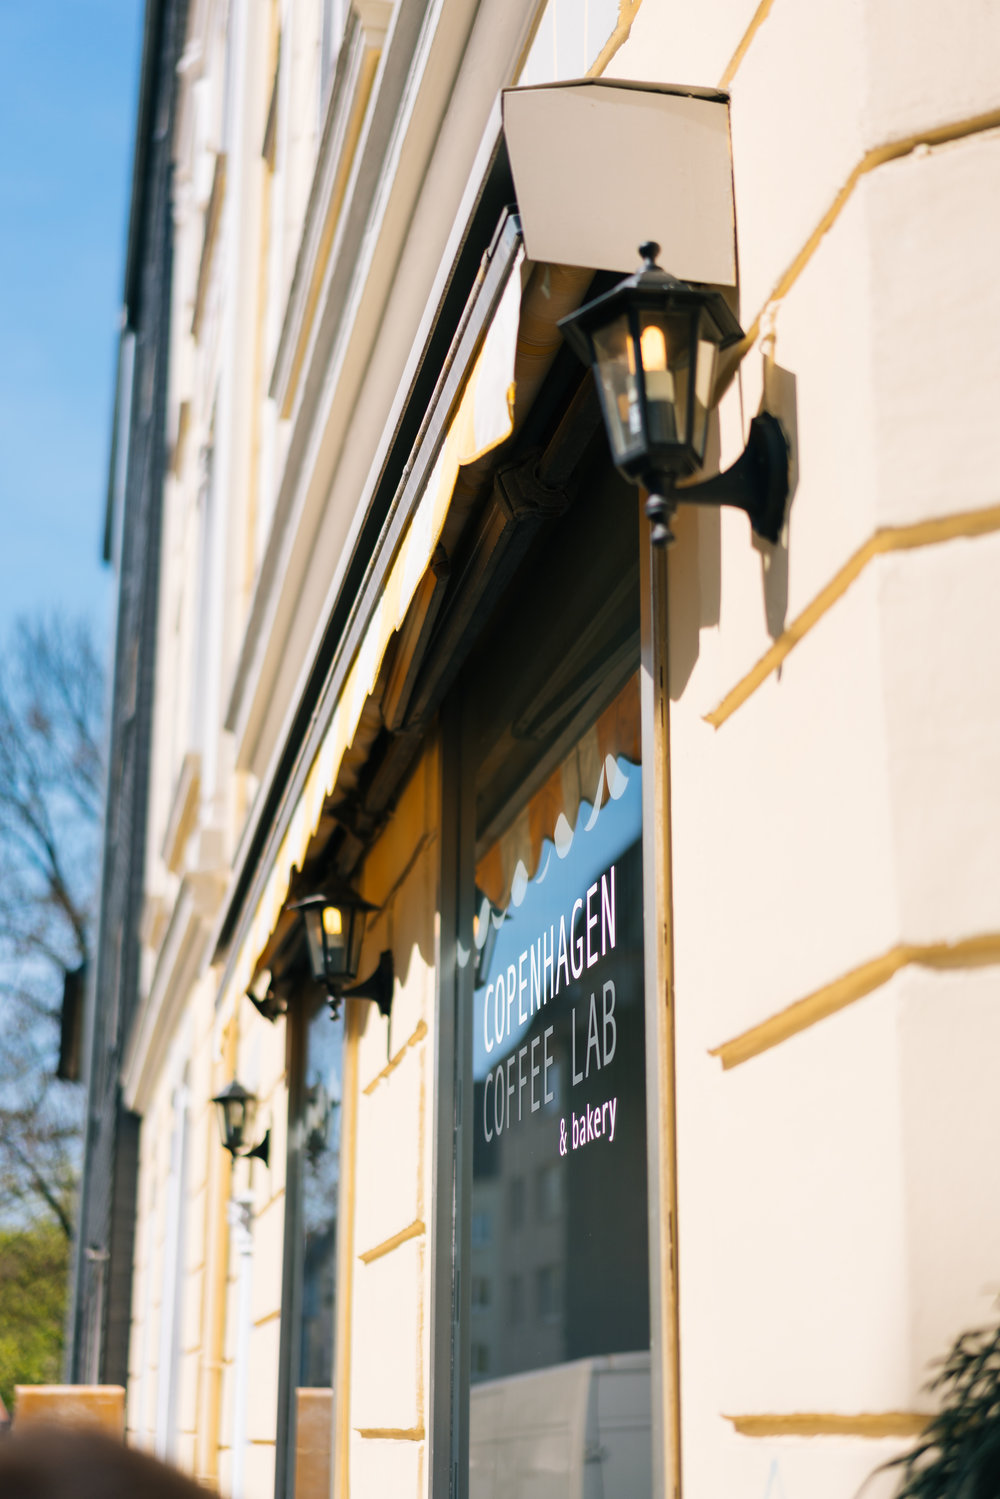 Copenhagen Coffee Lab and Bakery 031.jpg